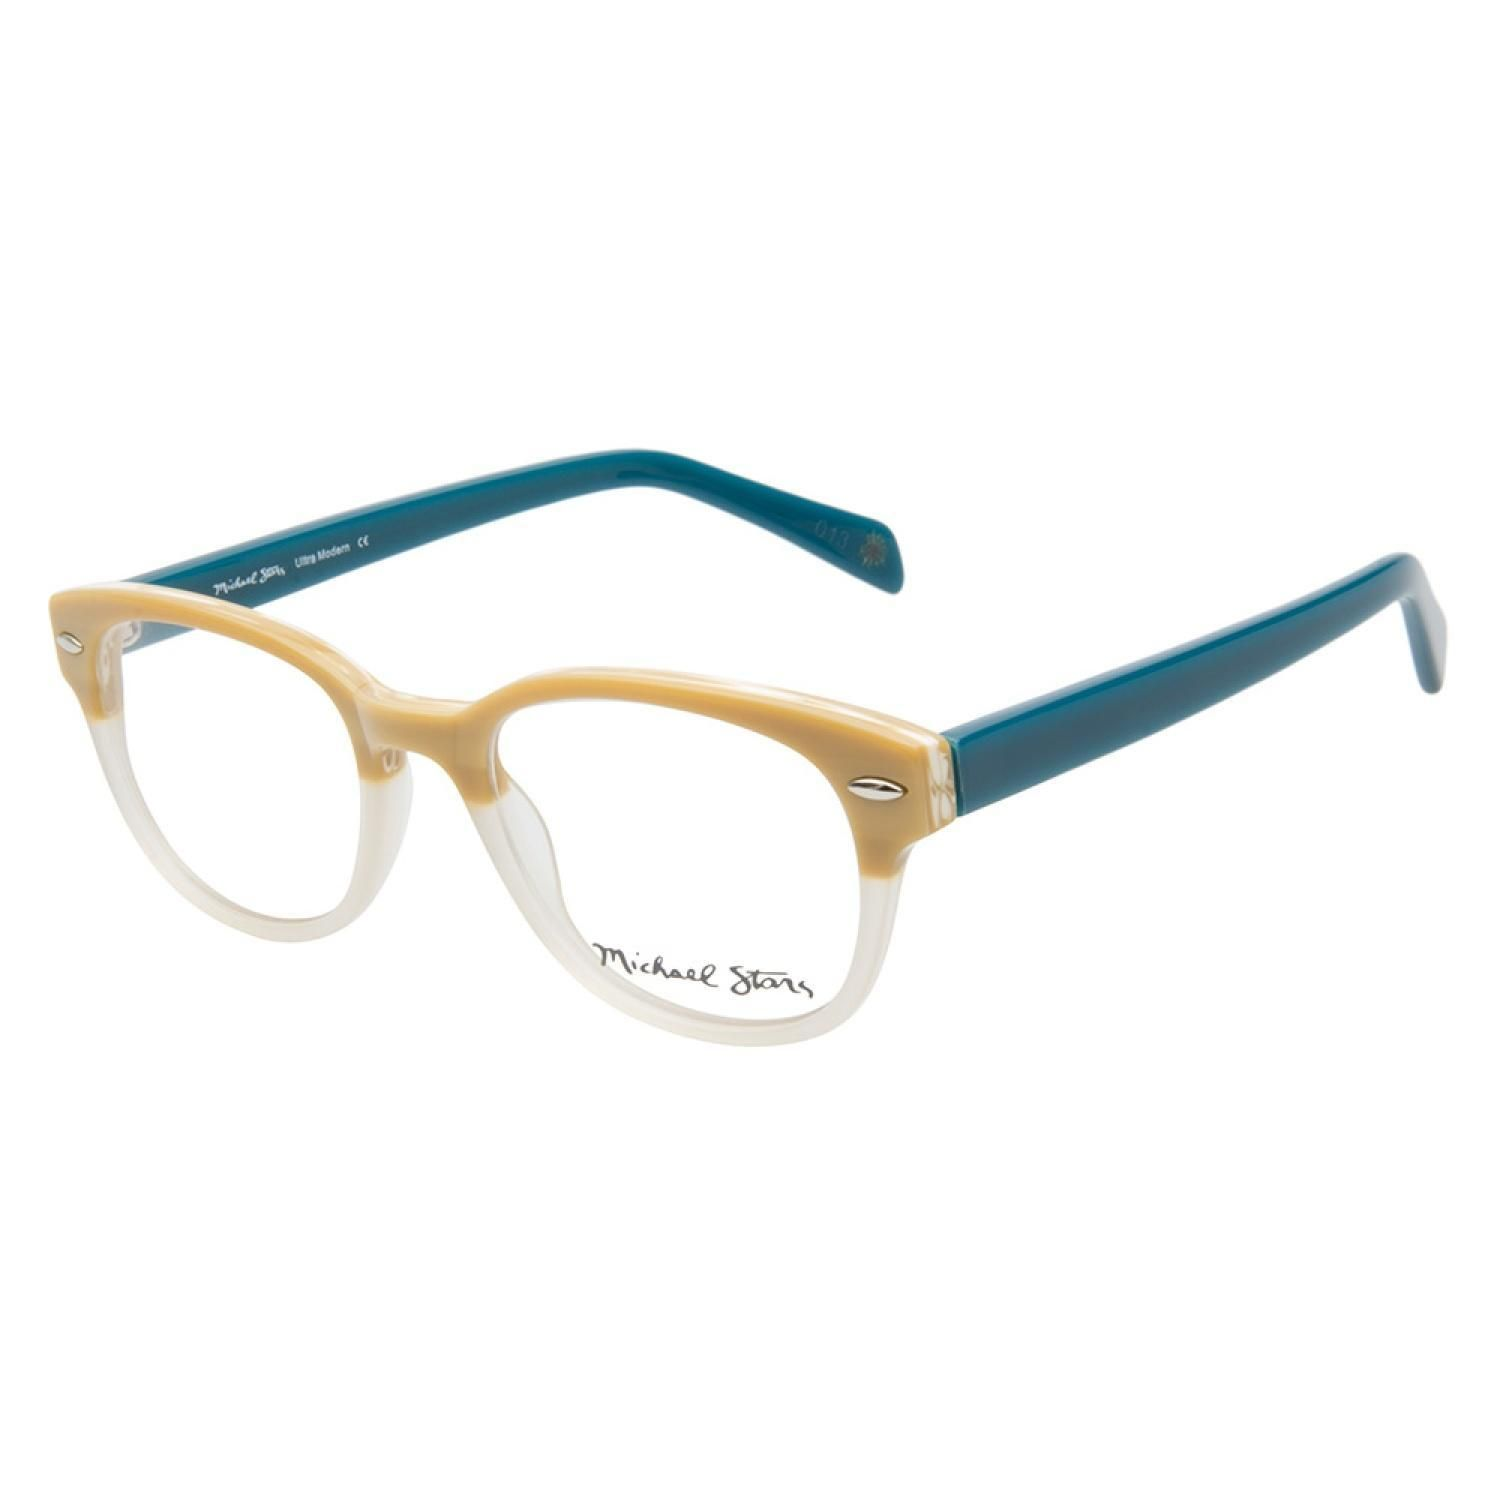 Michael Stars Ultra Modern Linen Teal eyeglasses are fresh and casual. This feminine style comes in a beige and ivory two-toned finish on the frame front, accented with silver rivets on the outer corners. The opaque teal temples add a